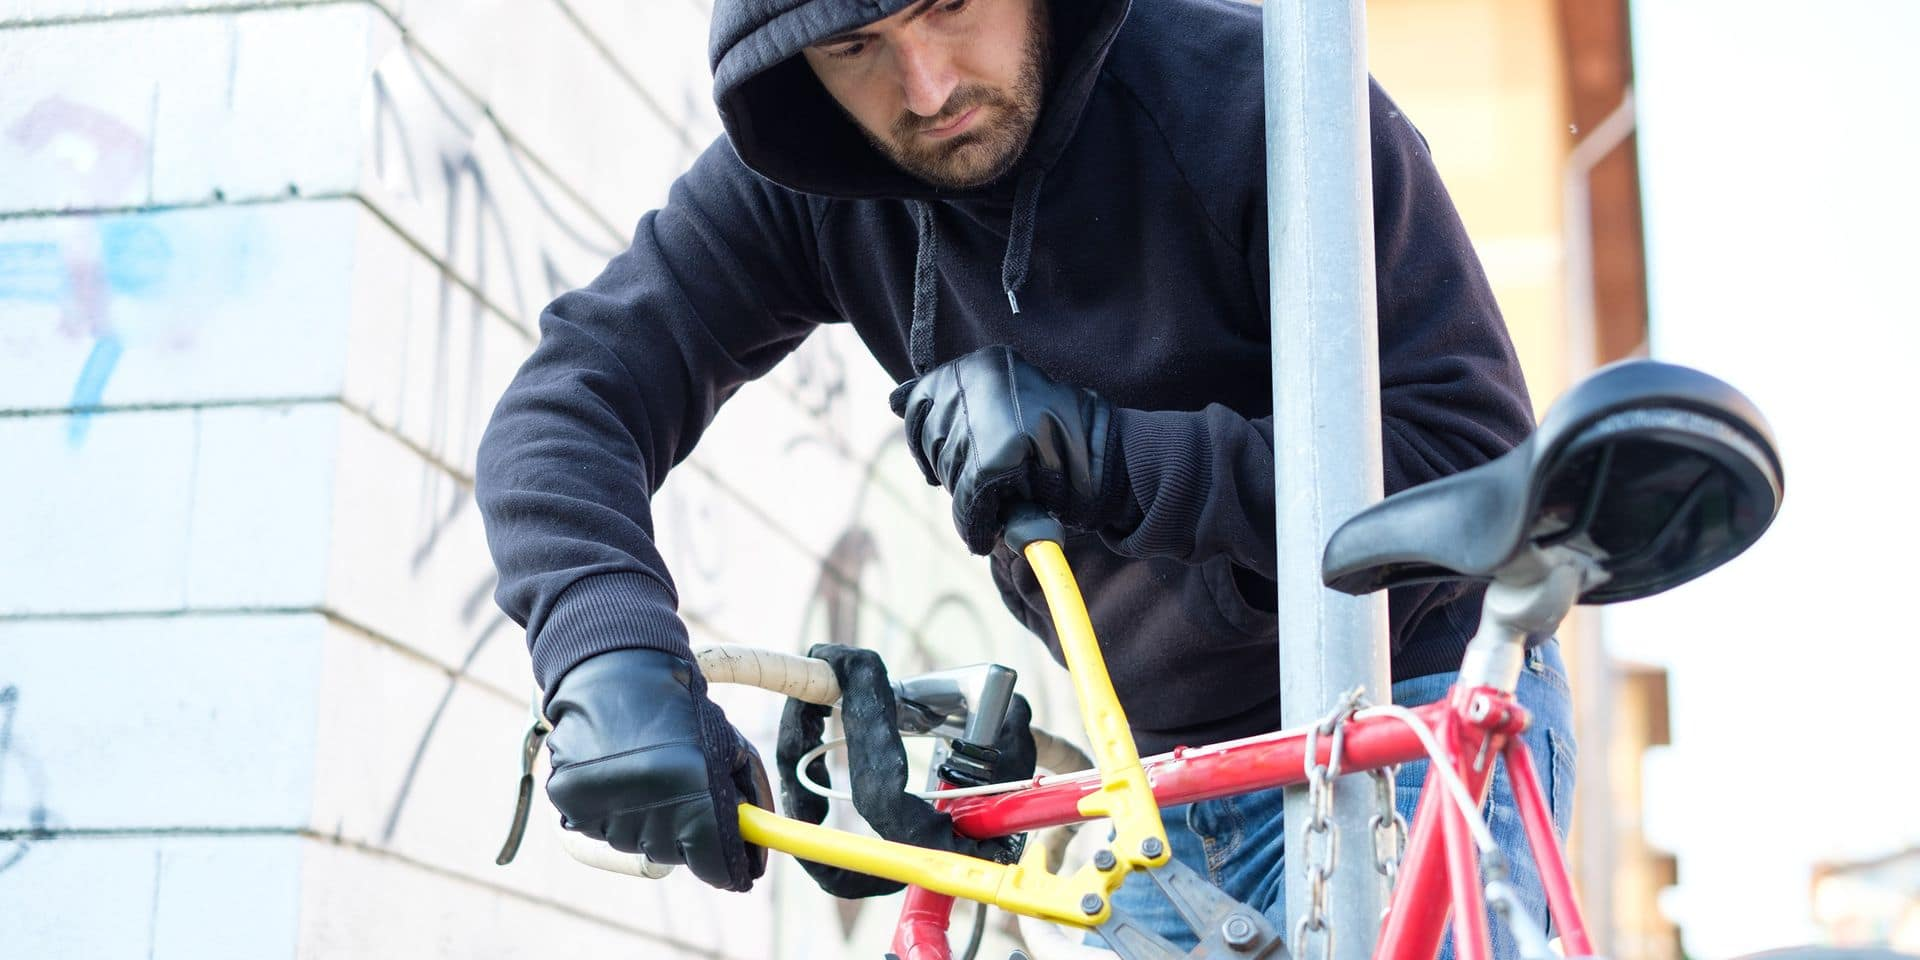 Thief,Stealing,A,Parked,Bike,In,The,City,Street